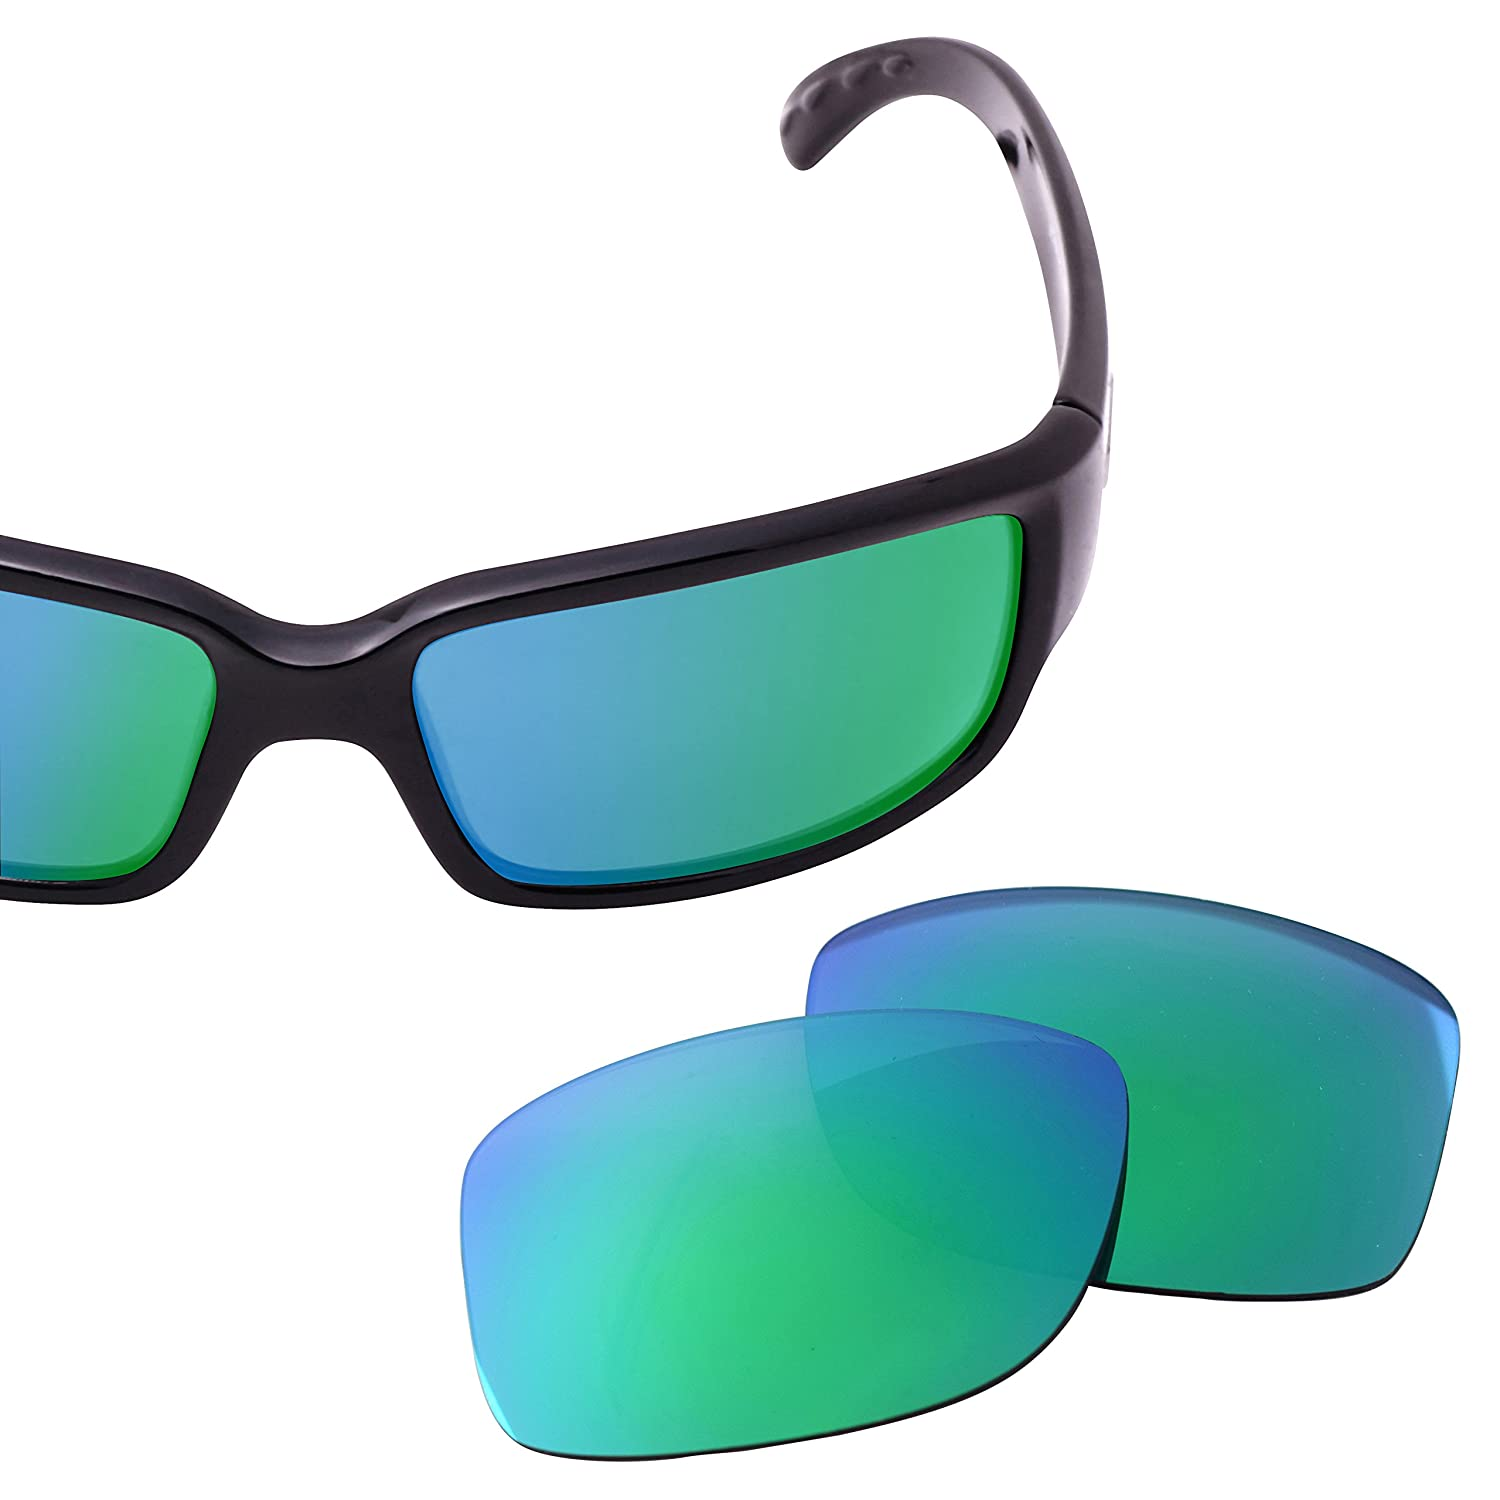 LenzFlip Replacement Lenses for Costa Del Mar CABALLITO - 6 Colors Available